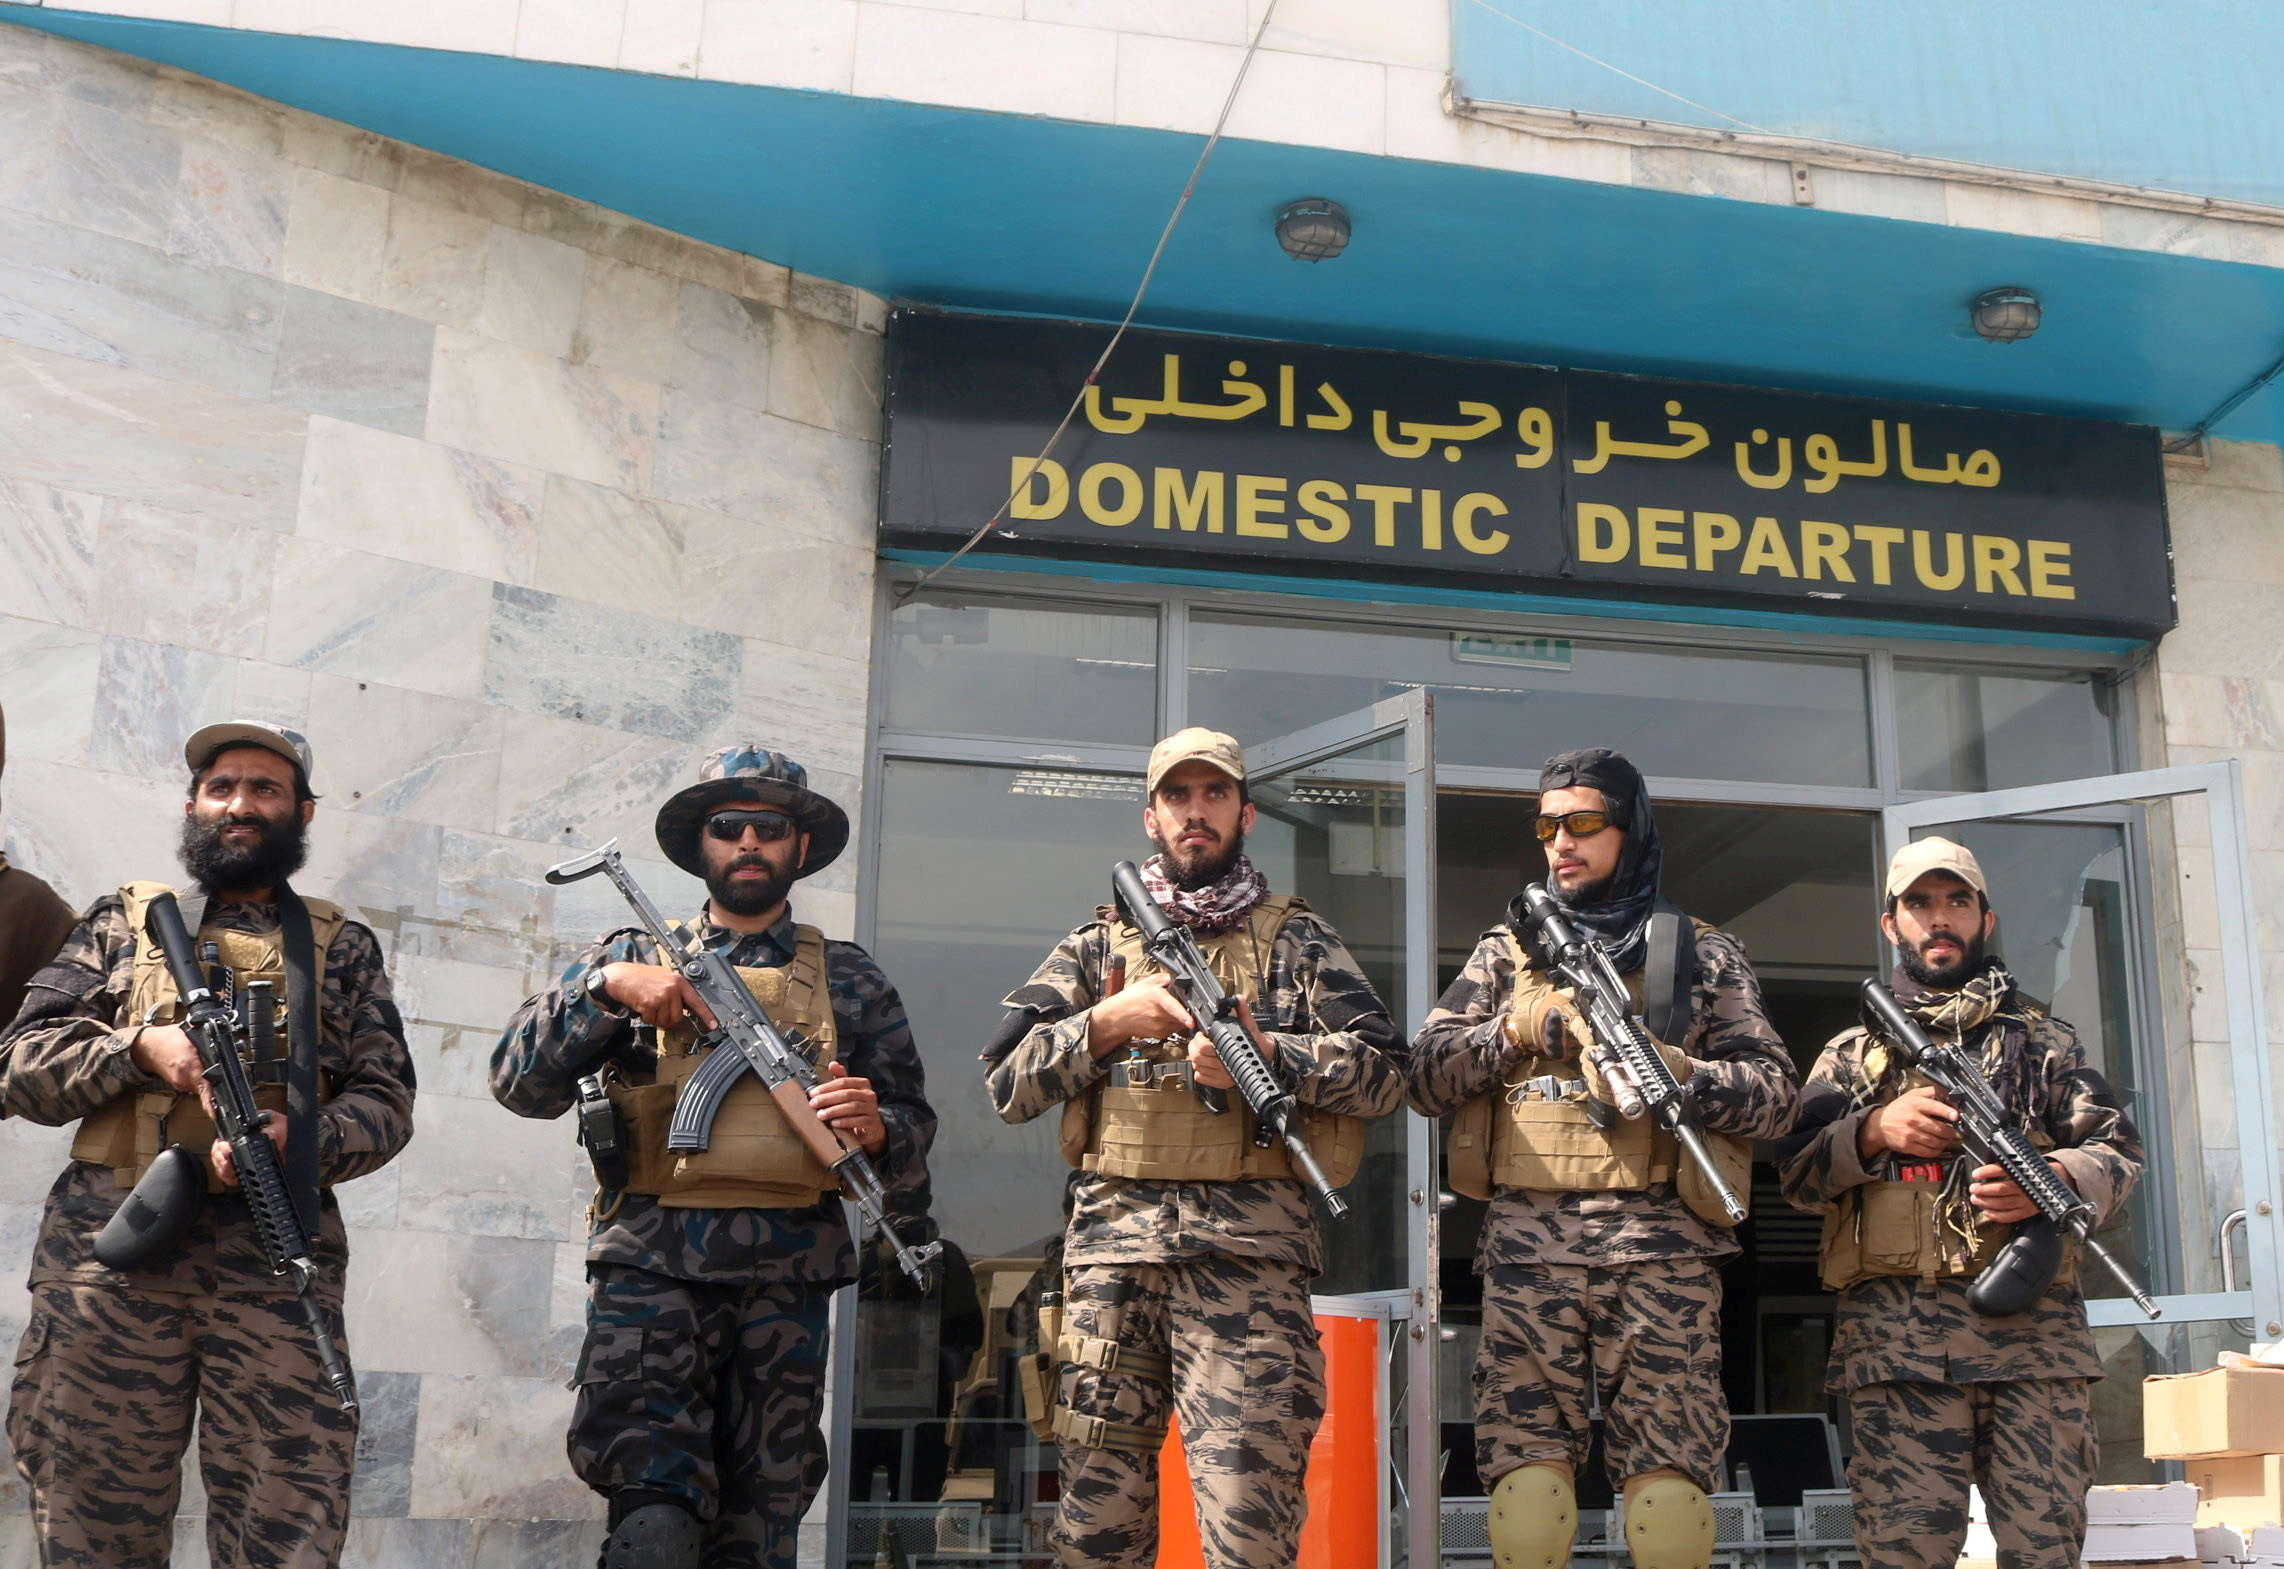 Taliban special forces guarding Kabul Airport, commercial flights yet to resume